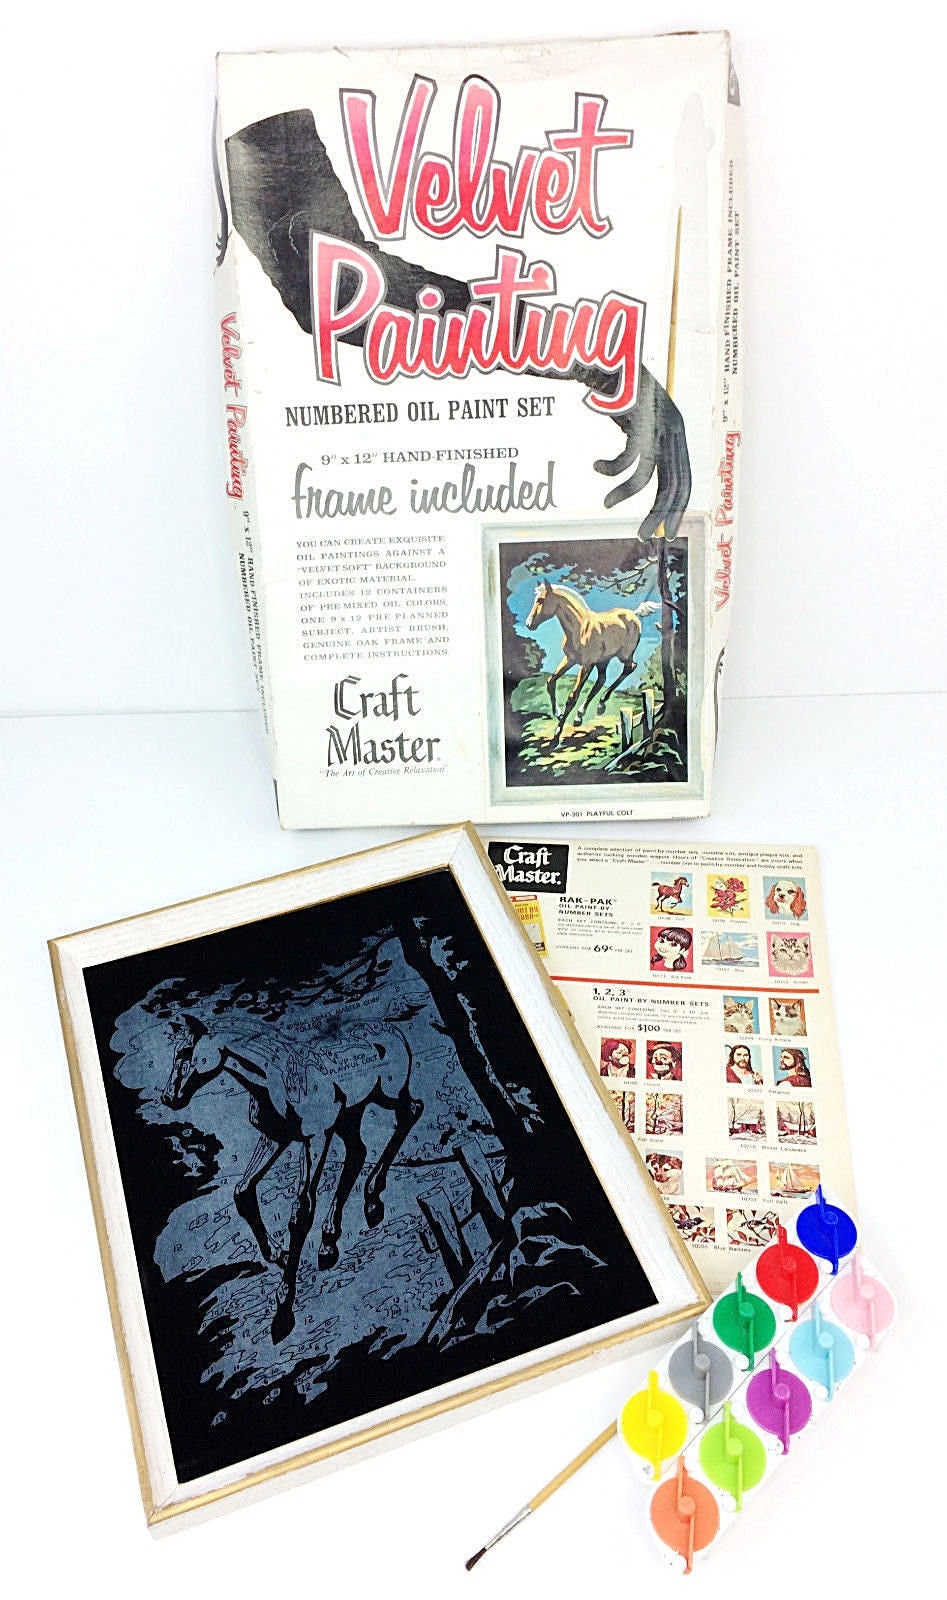 Craft master paint by number kits - Vintage 1966 Craft Master Black Velvet Paint By Number Kit Playful Colt Horse A1